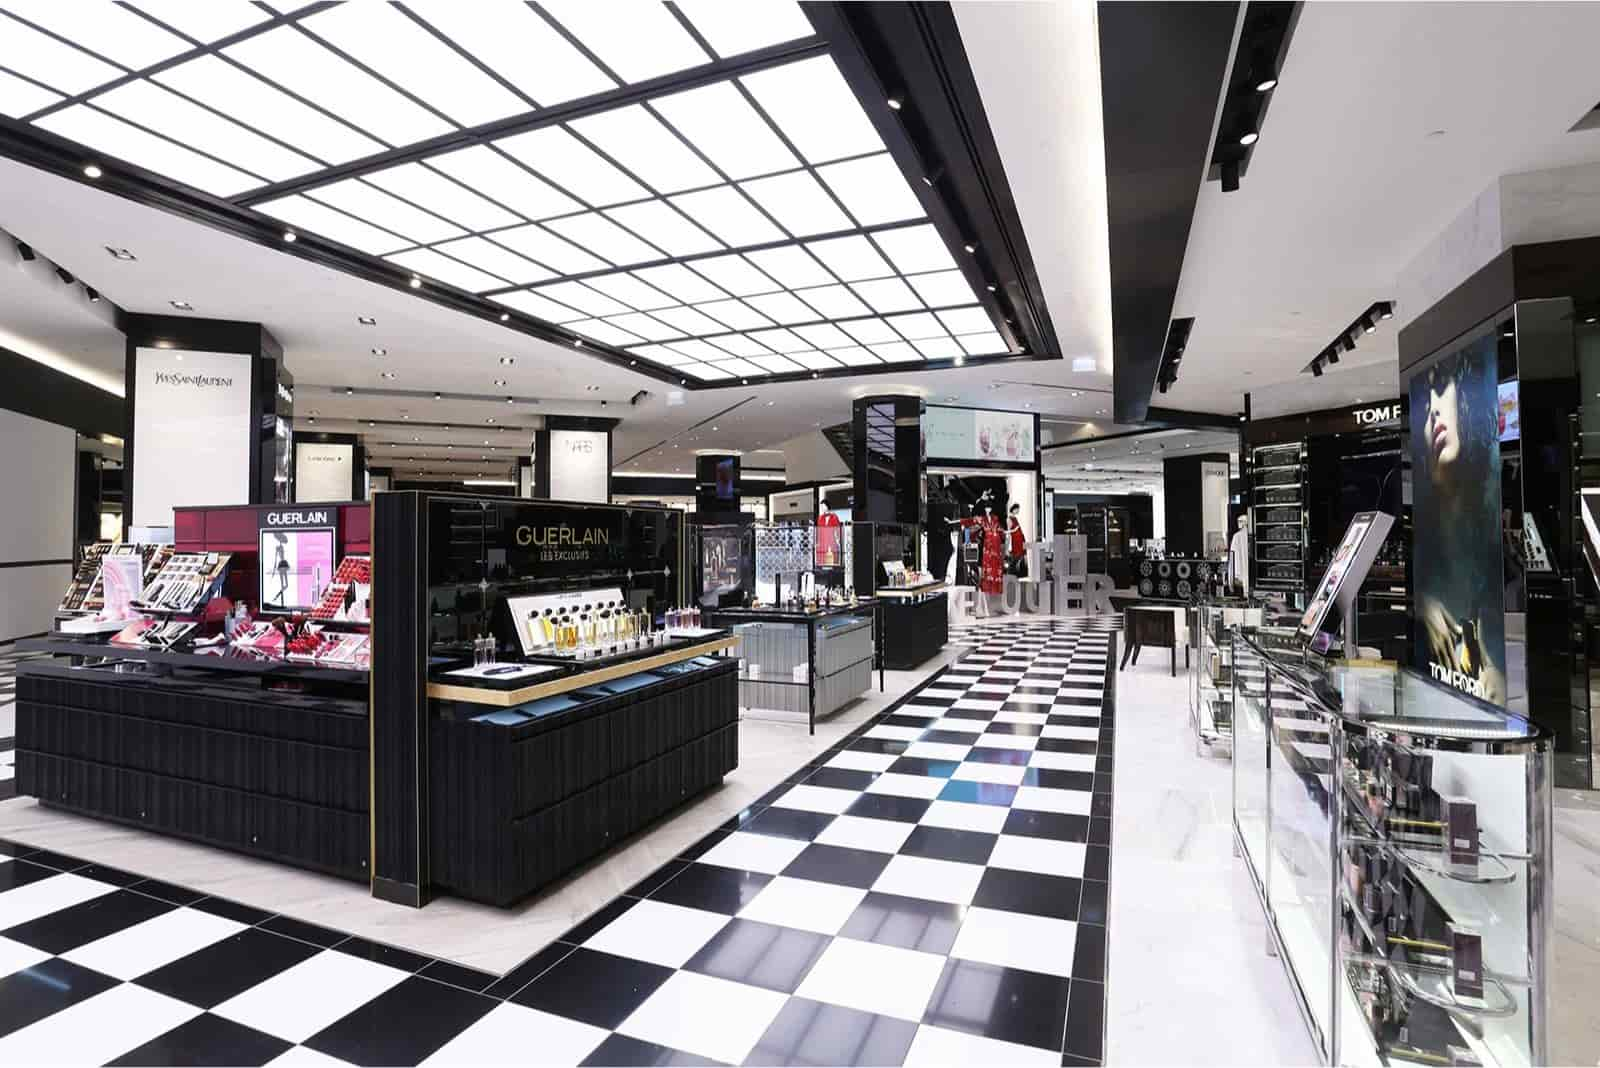 BLOOMINGDALE'S – KUWAIT CITY, KUWAIT